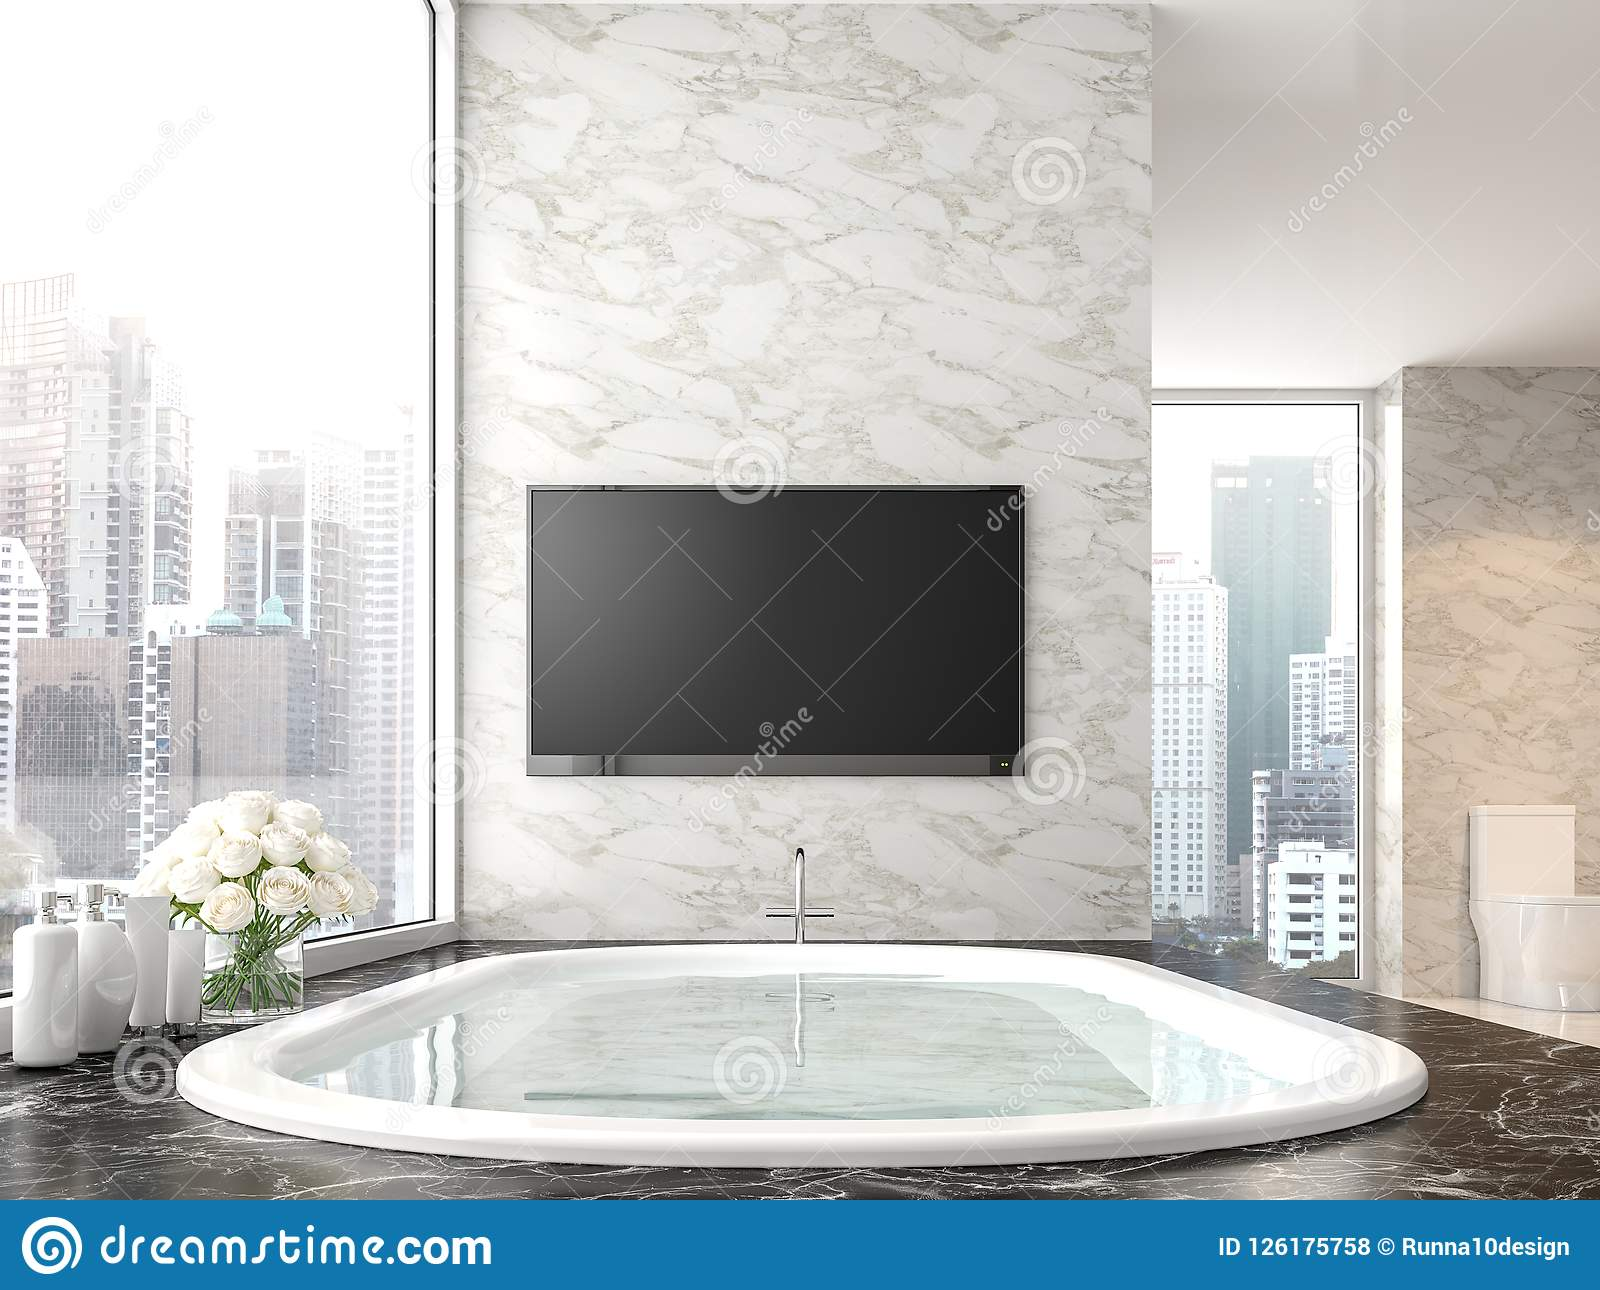 Luxury Bathroom With City View 3d Render Stock Illustration